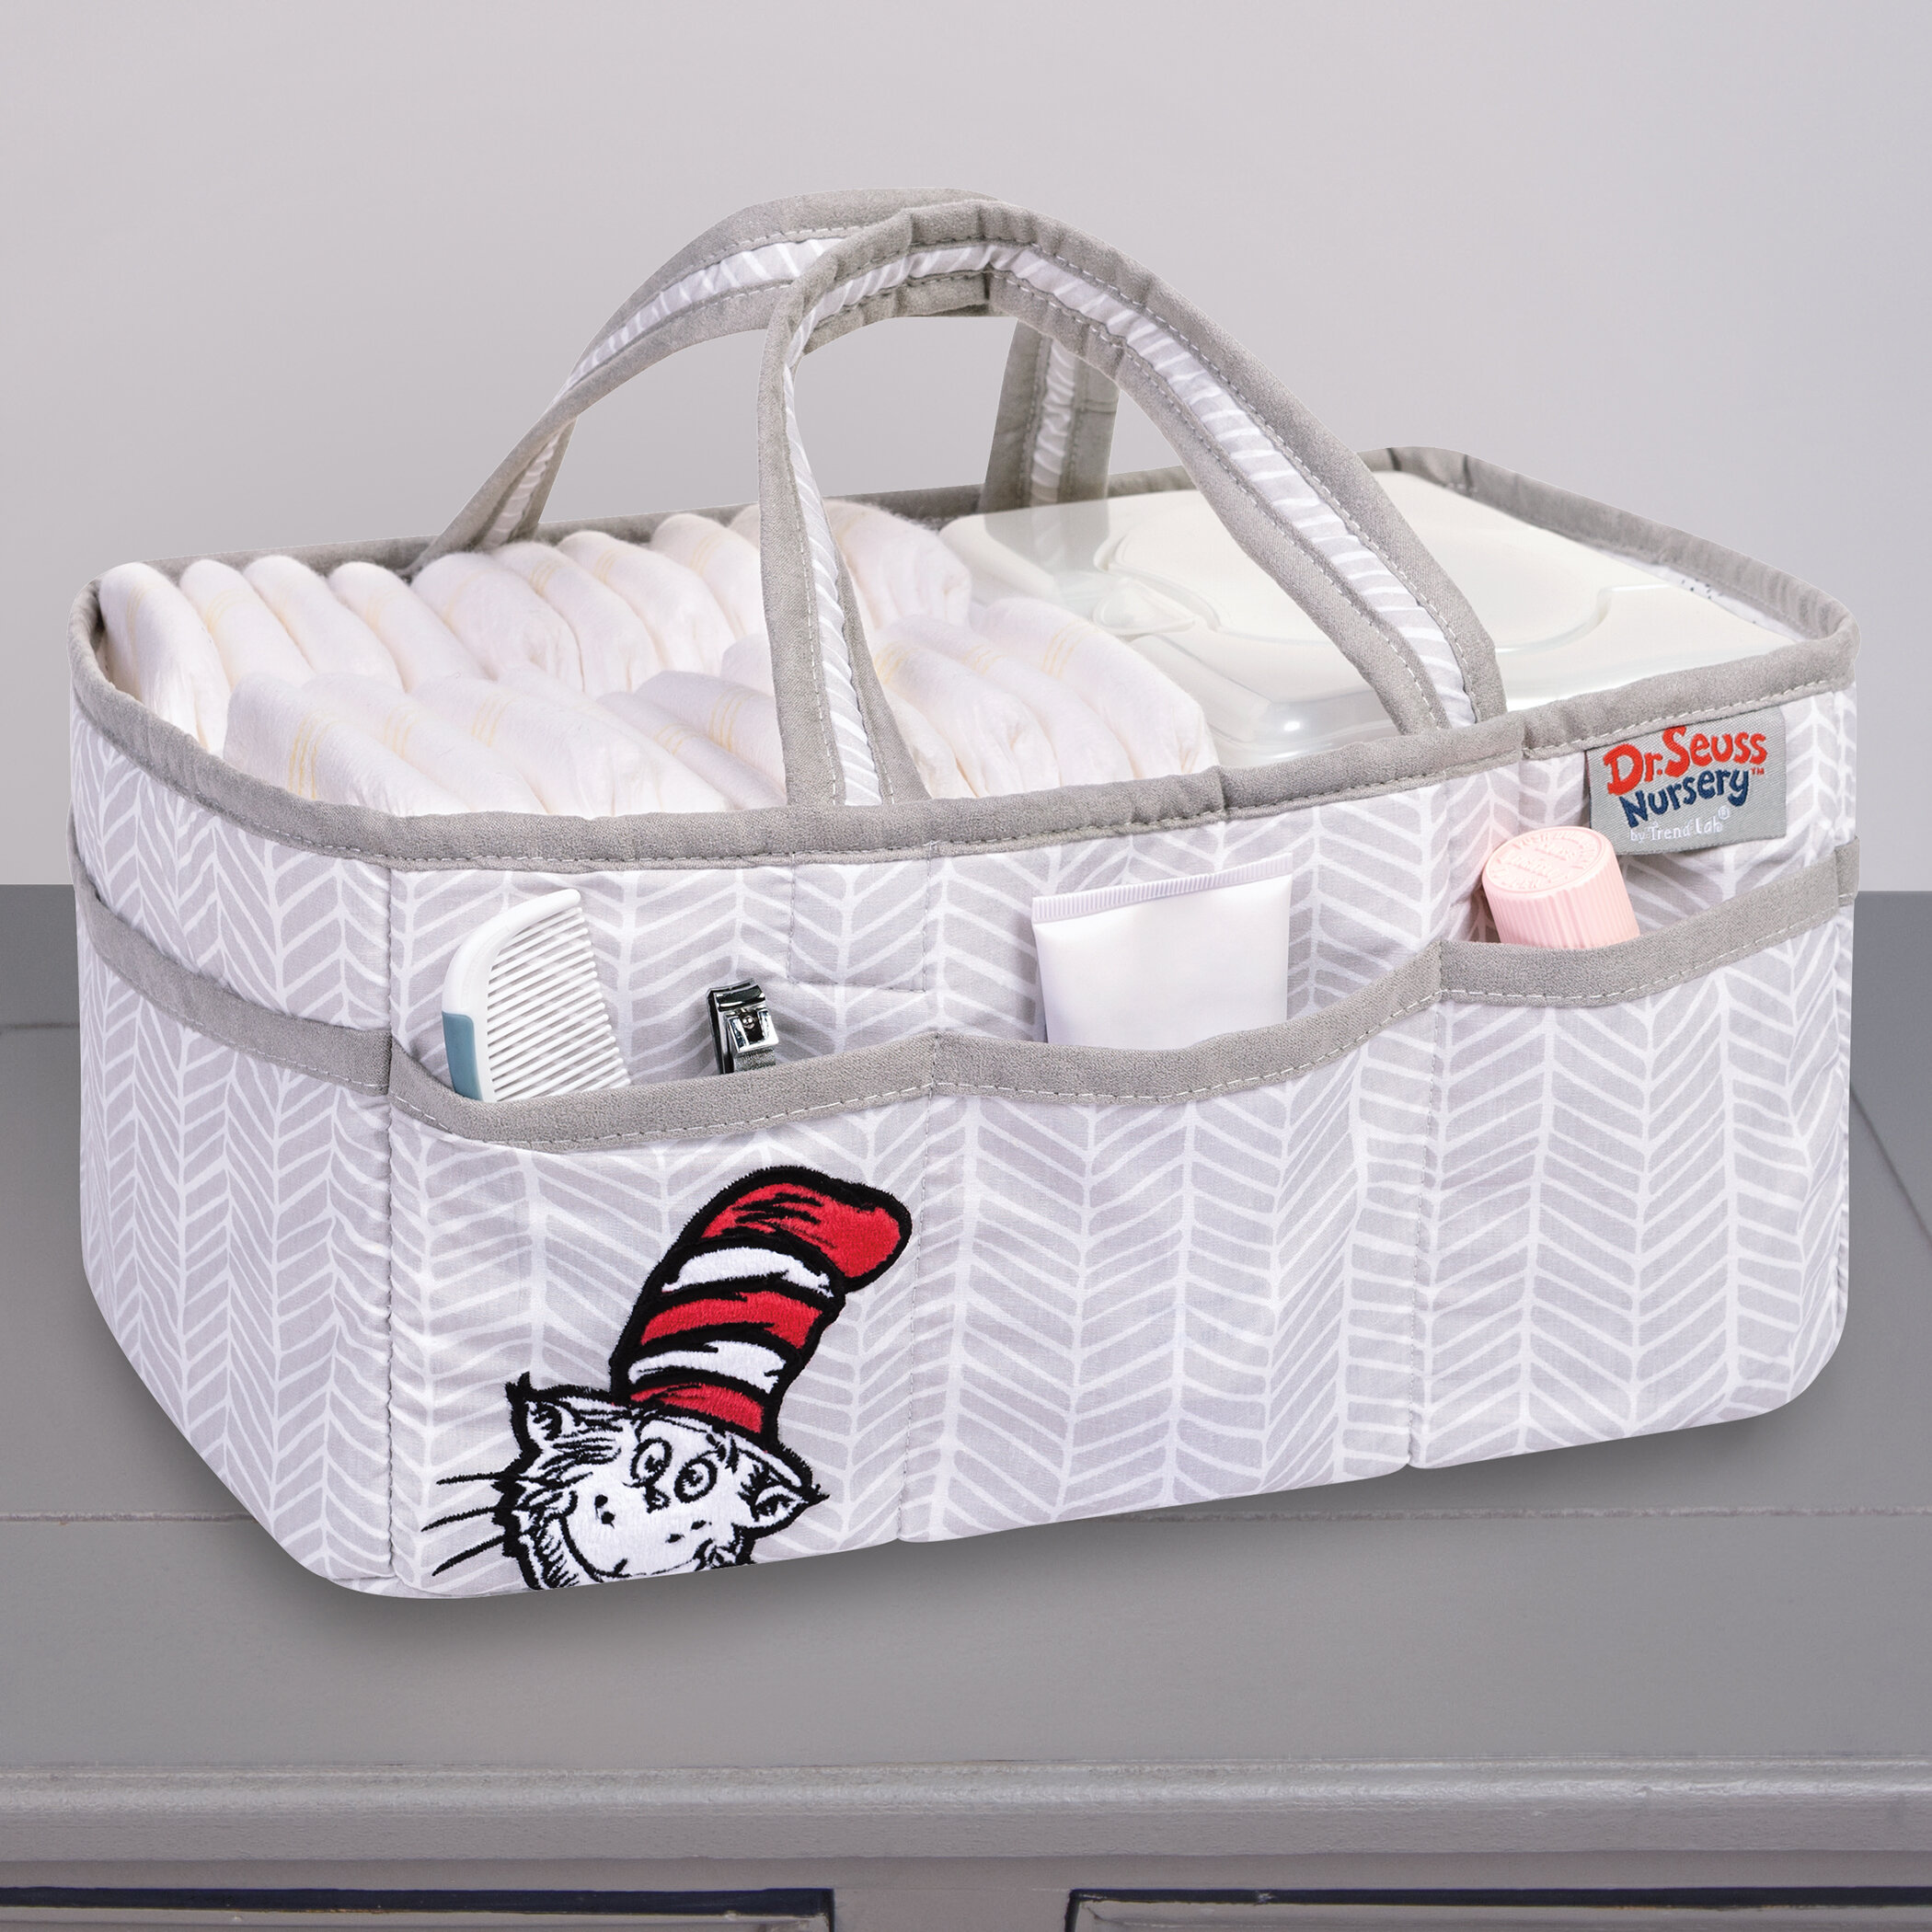 Dr Seuss The Cat in the Hat Fabric Organizer Basket Bin Caddy Storage Container